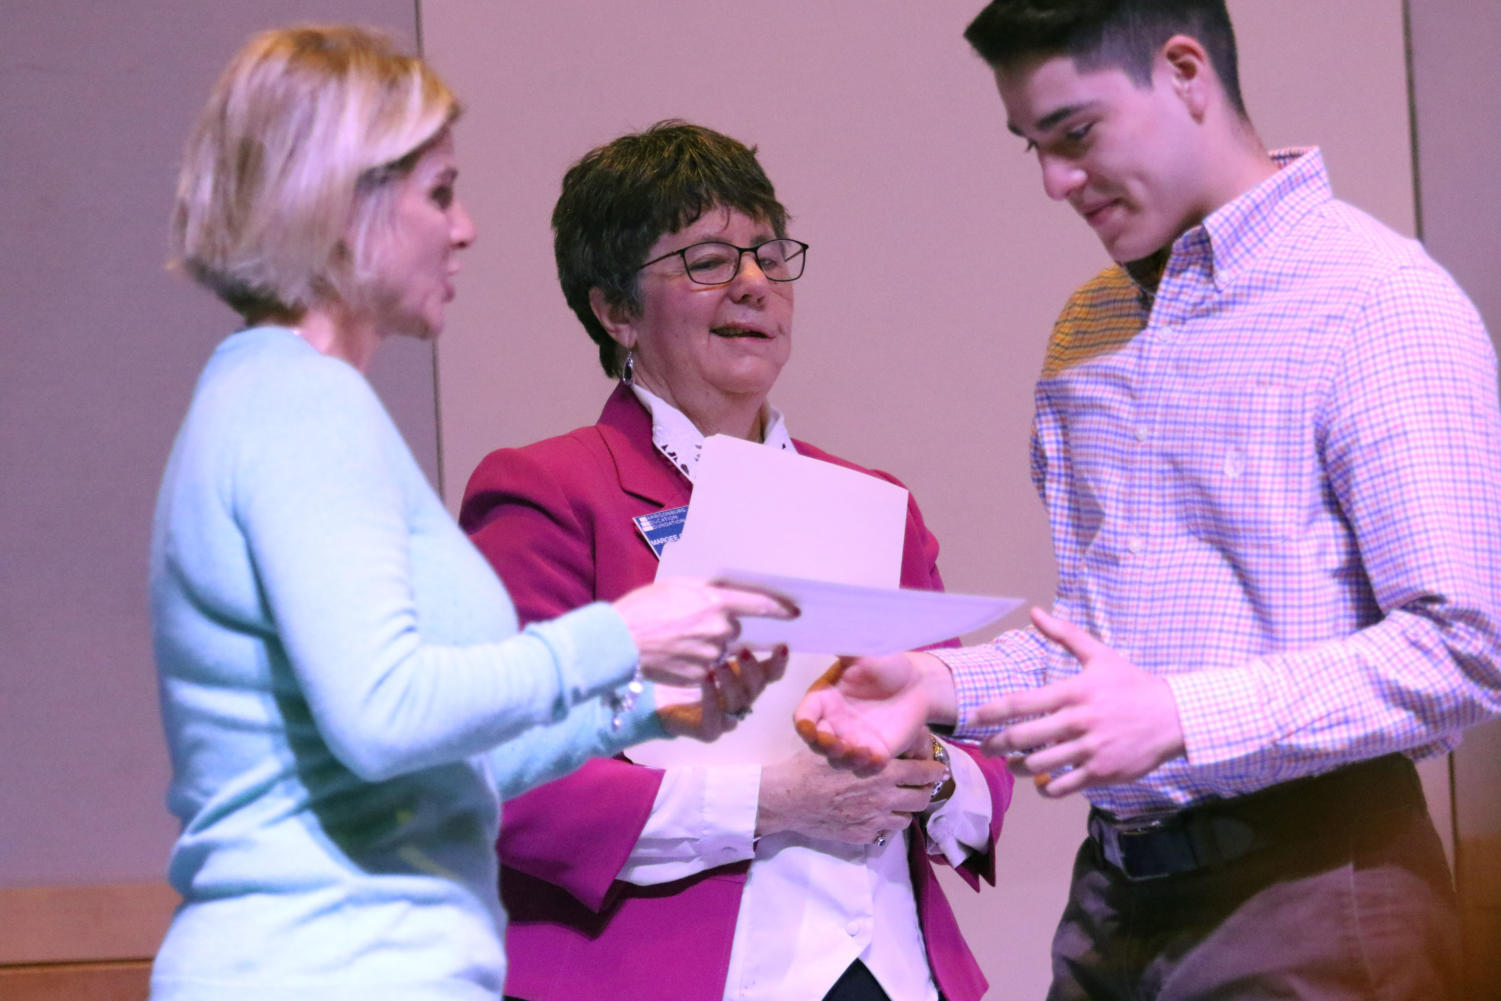 Guillermo Lopez receives the Greg Memorial scholarship grant while attending the Breakfast of Champions.